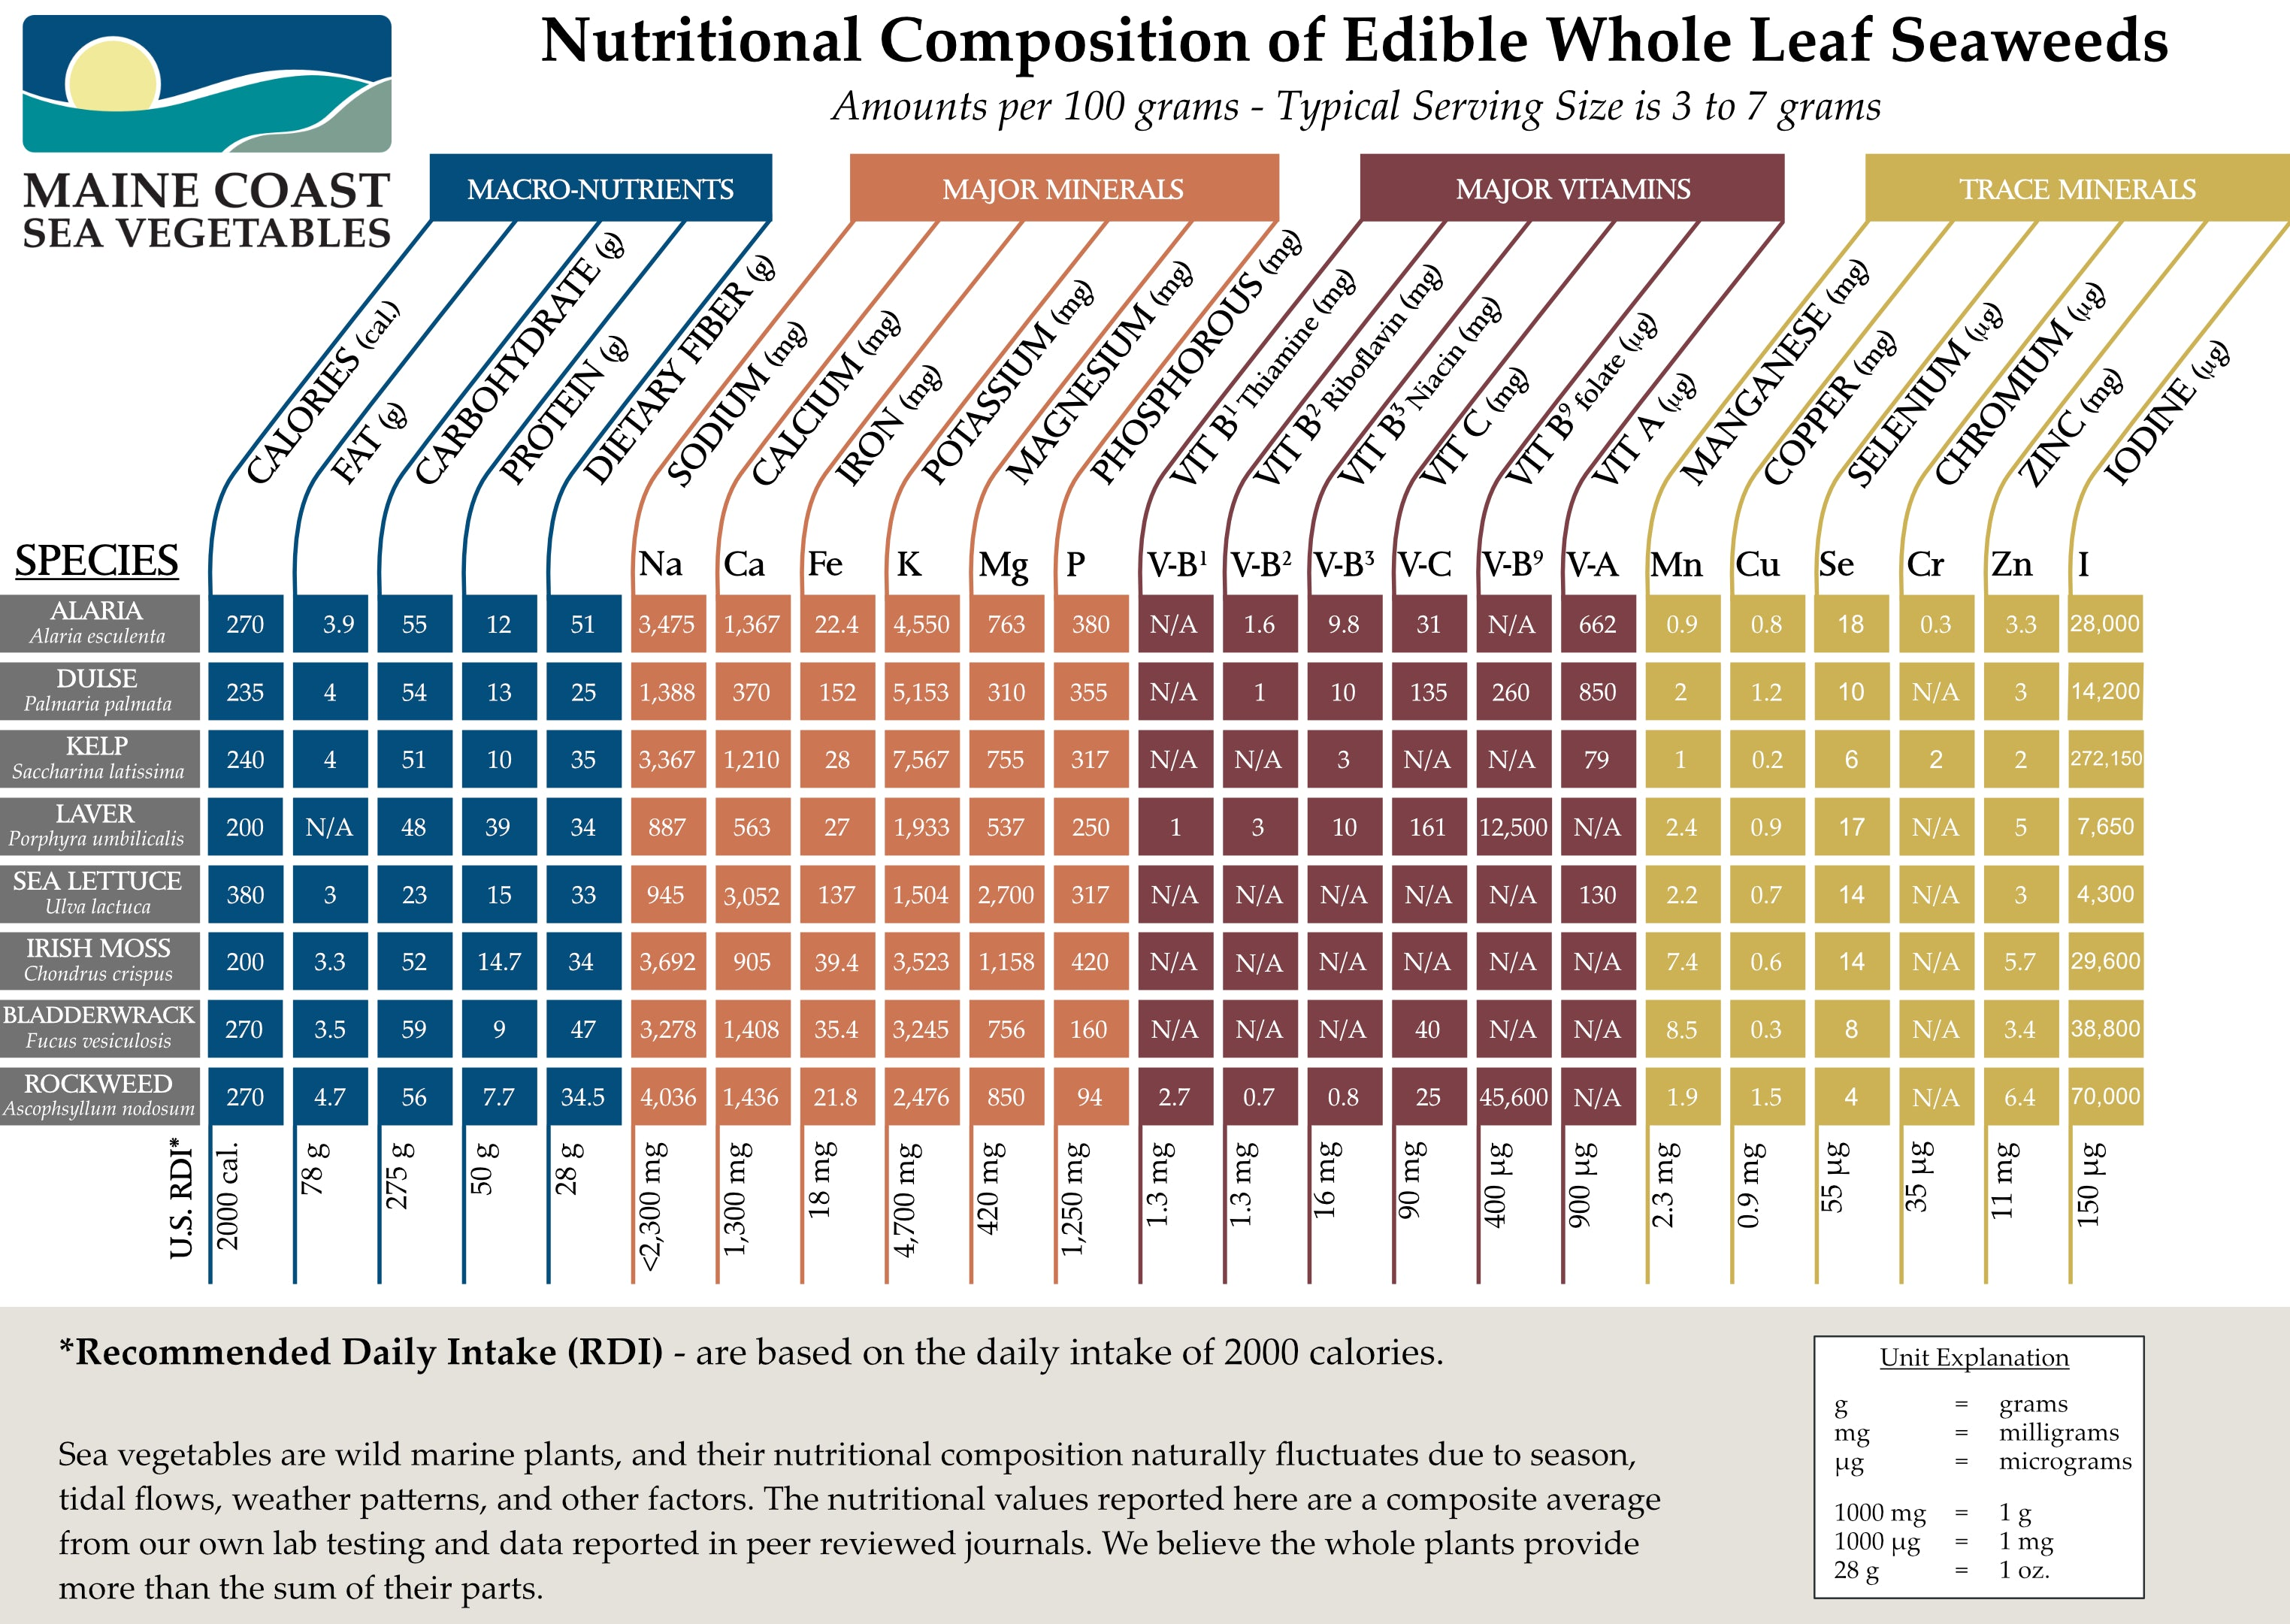 Seaweed Nutritional Facts For Dulse, Laver, Kelp, Sea Lettuce, Alaria, Nori, Kombu, Bladderwrack, Irish Moss, and Rockweed